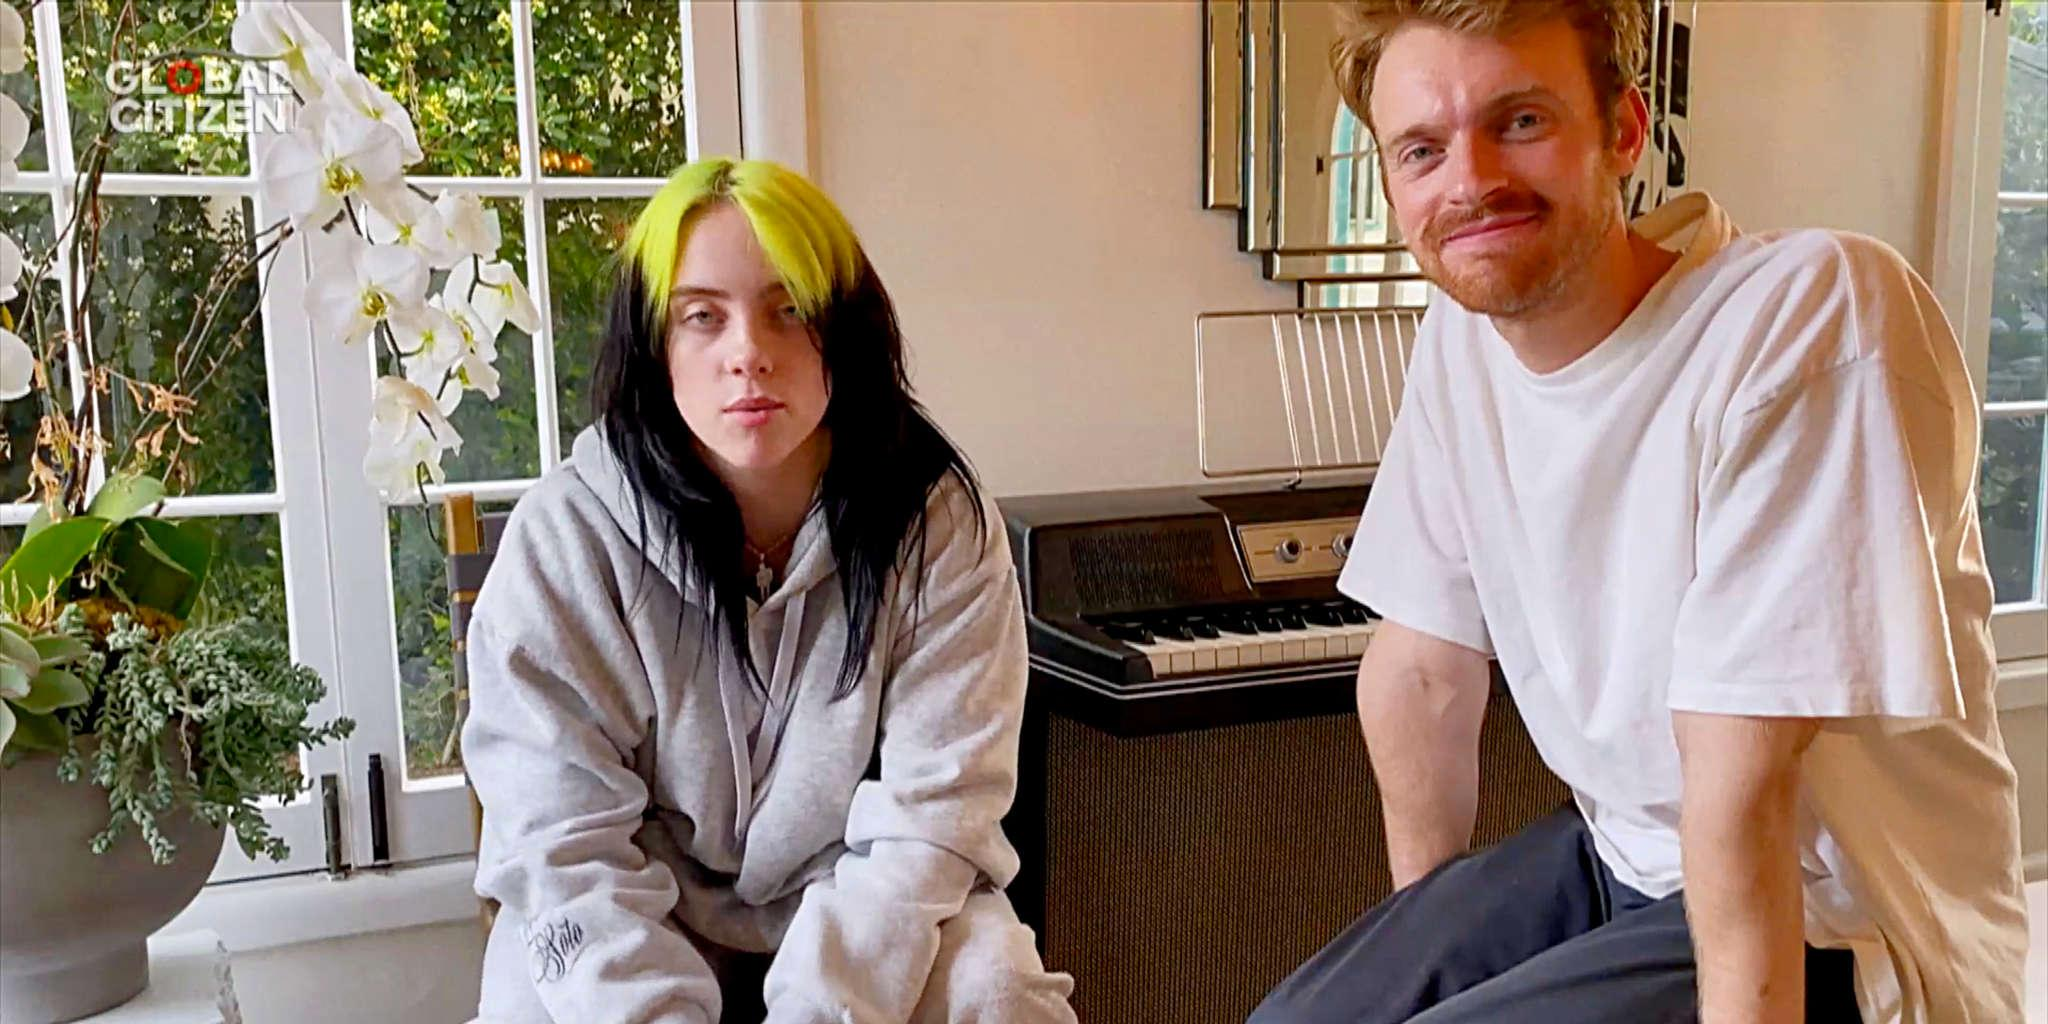 Billie Eilish's Brother Finneas Shoots His Shot With Britney Spears - Asks Her Out On Social Media And Fans Are Freaking Out!